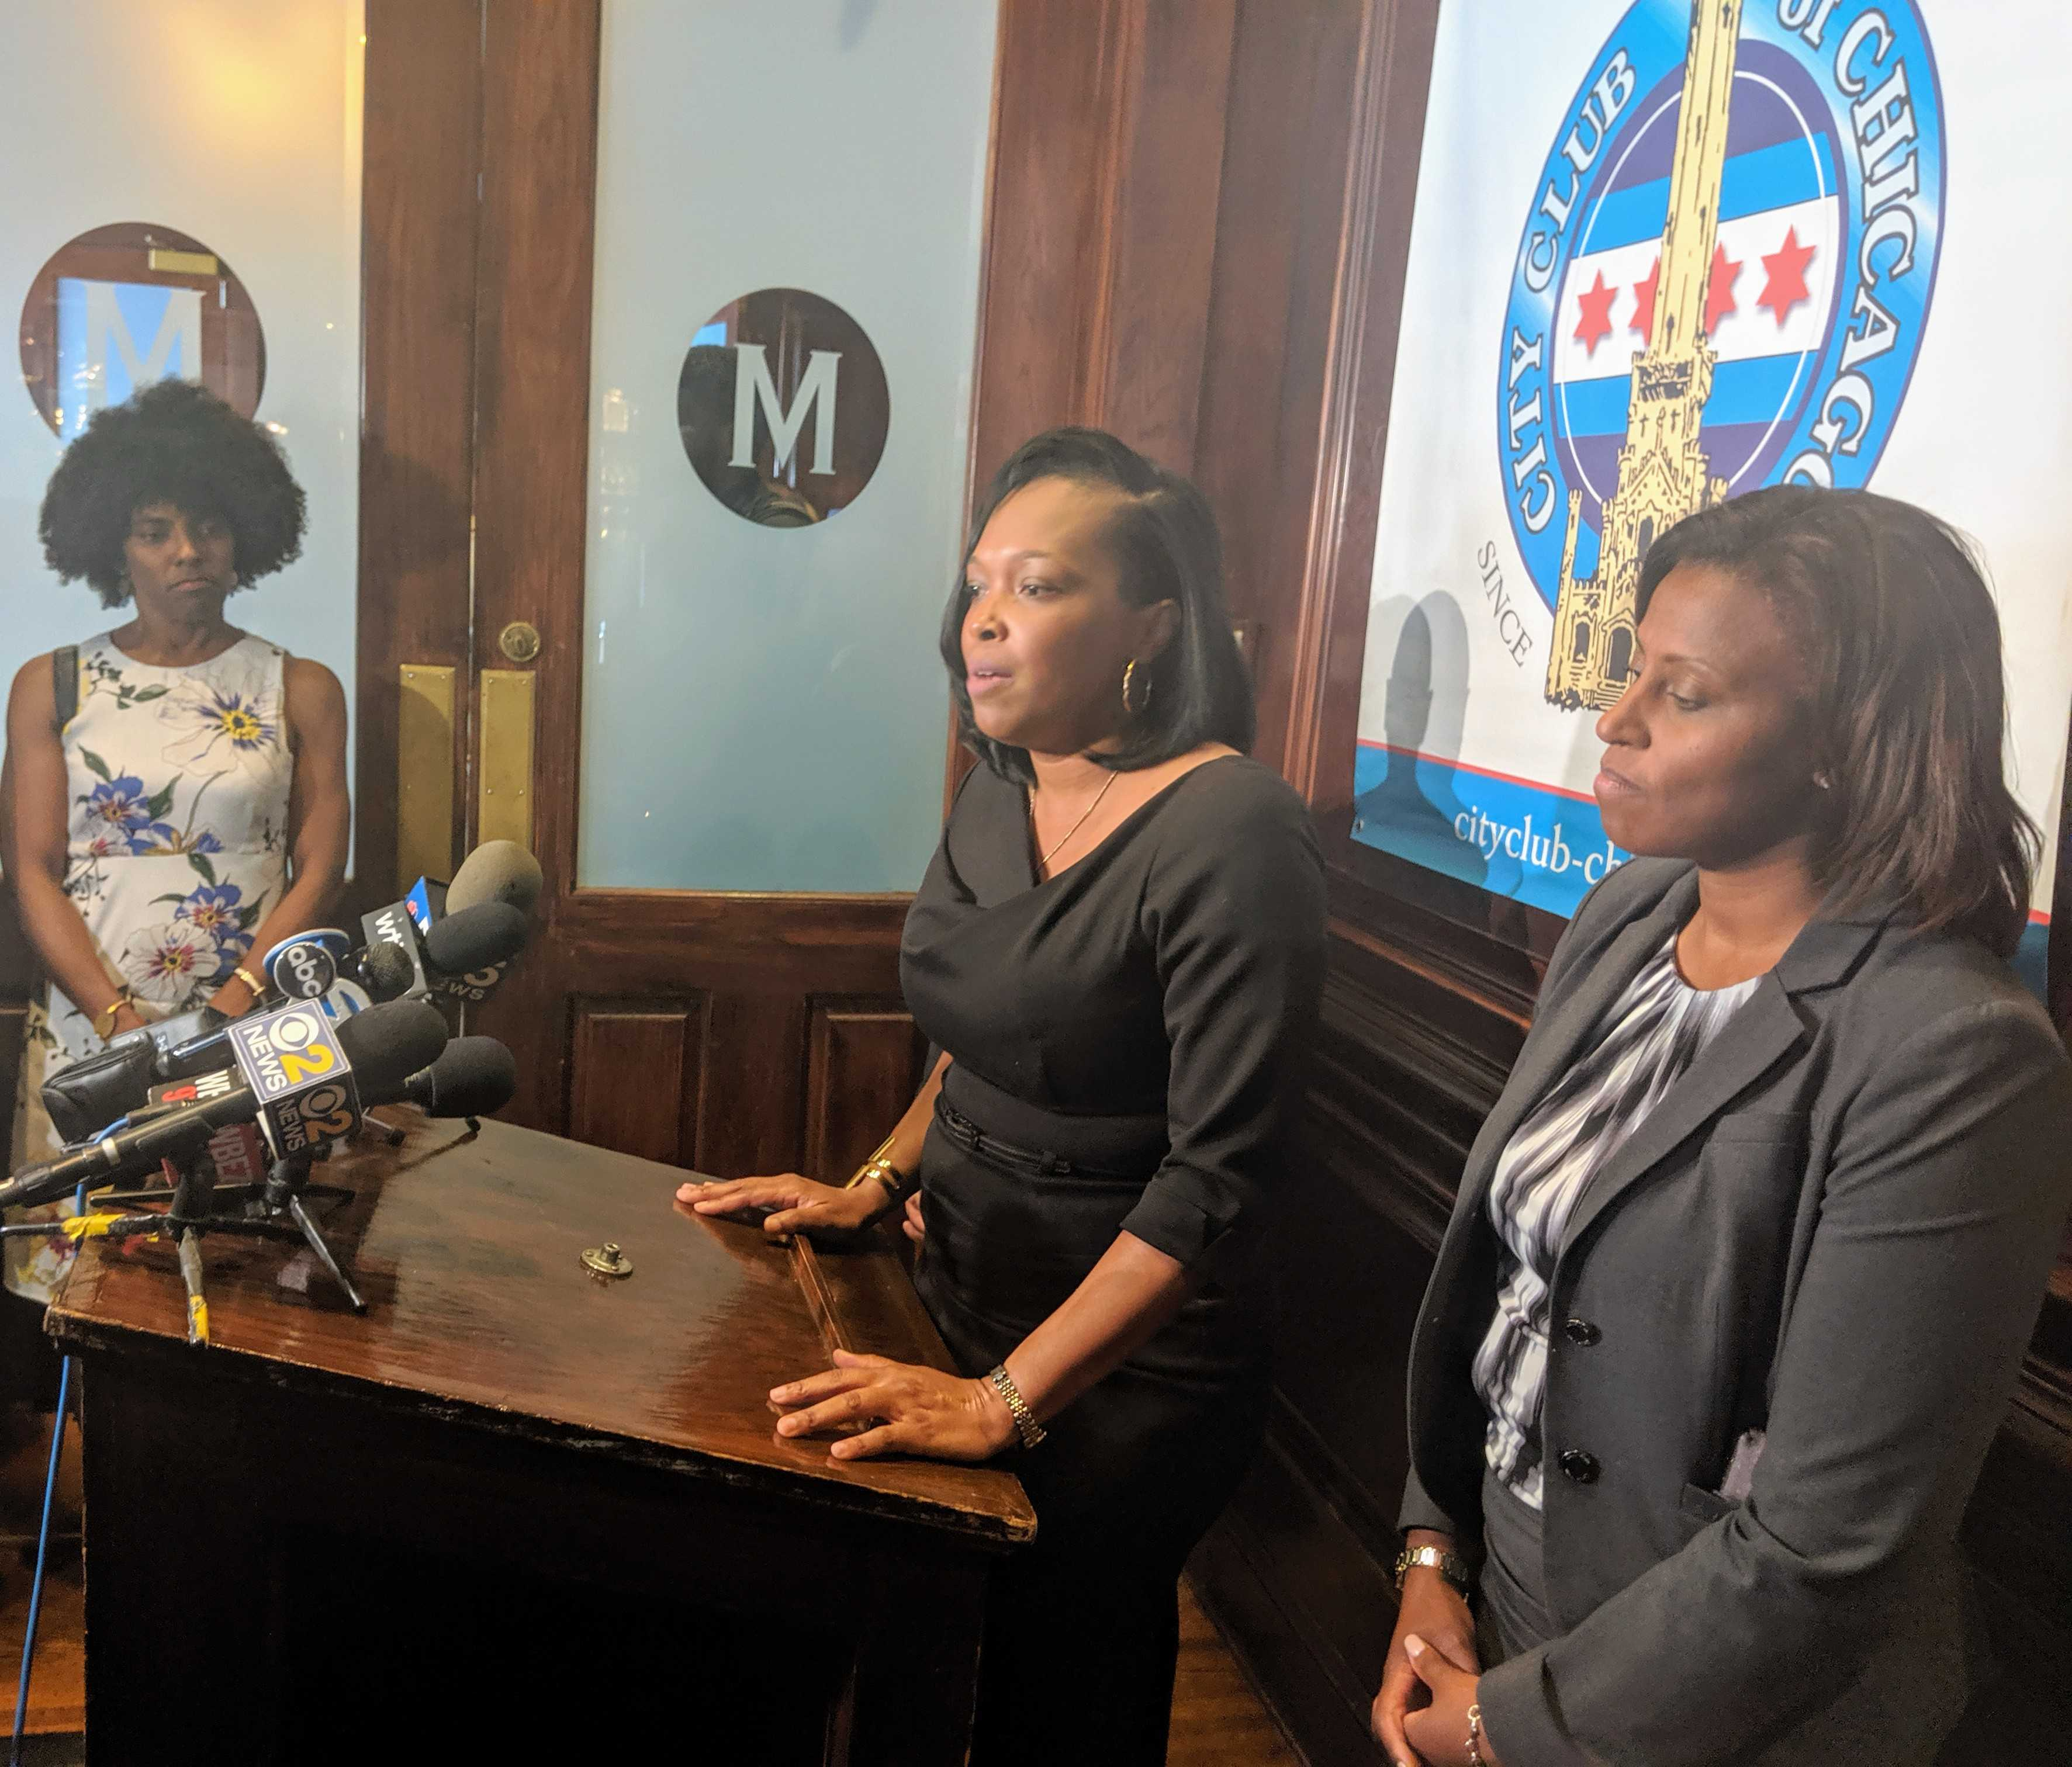 Schools CEO Janice Jackson speaks after a City Club of Chicago event Thursday. Deputy Mayor for Education and Human Services Sybil Madison is to her left, and the district's Chief Academic Officer LaTanya McDade stands to her right.